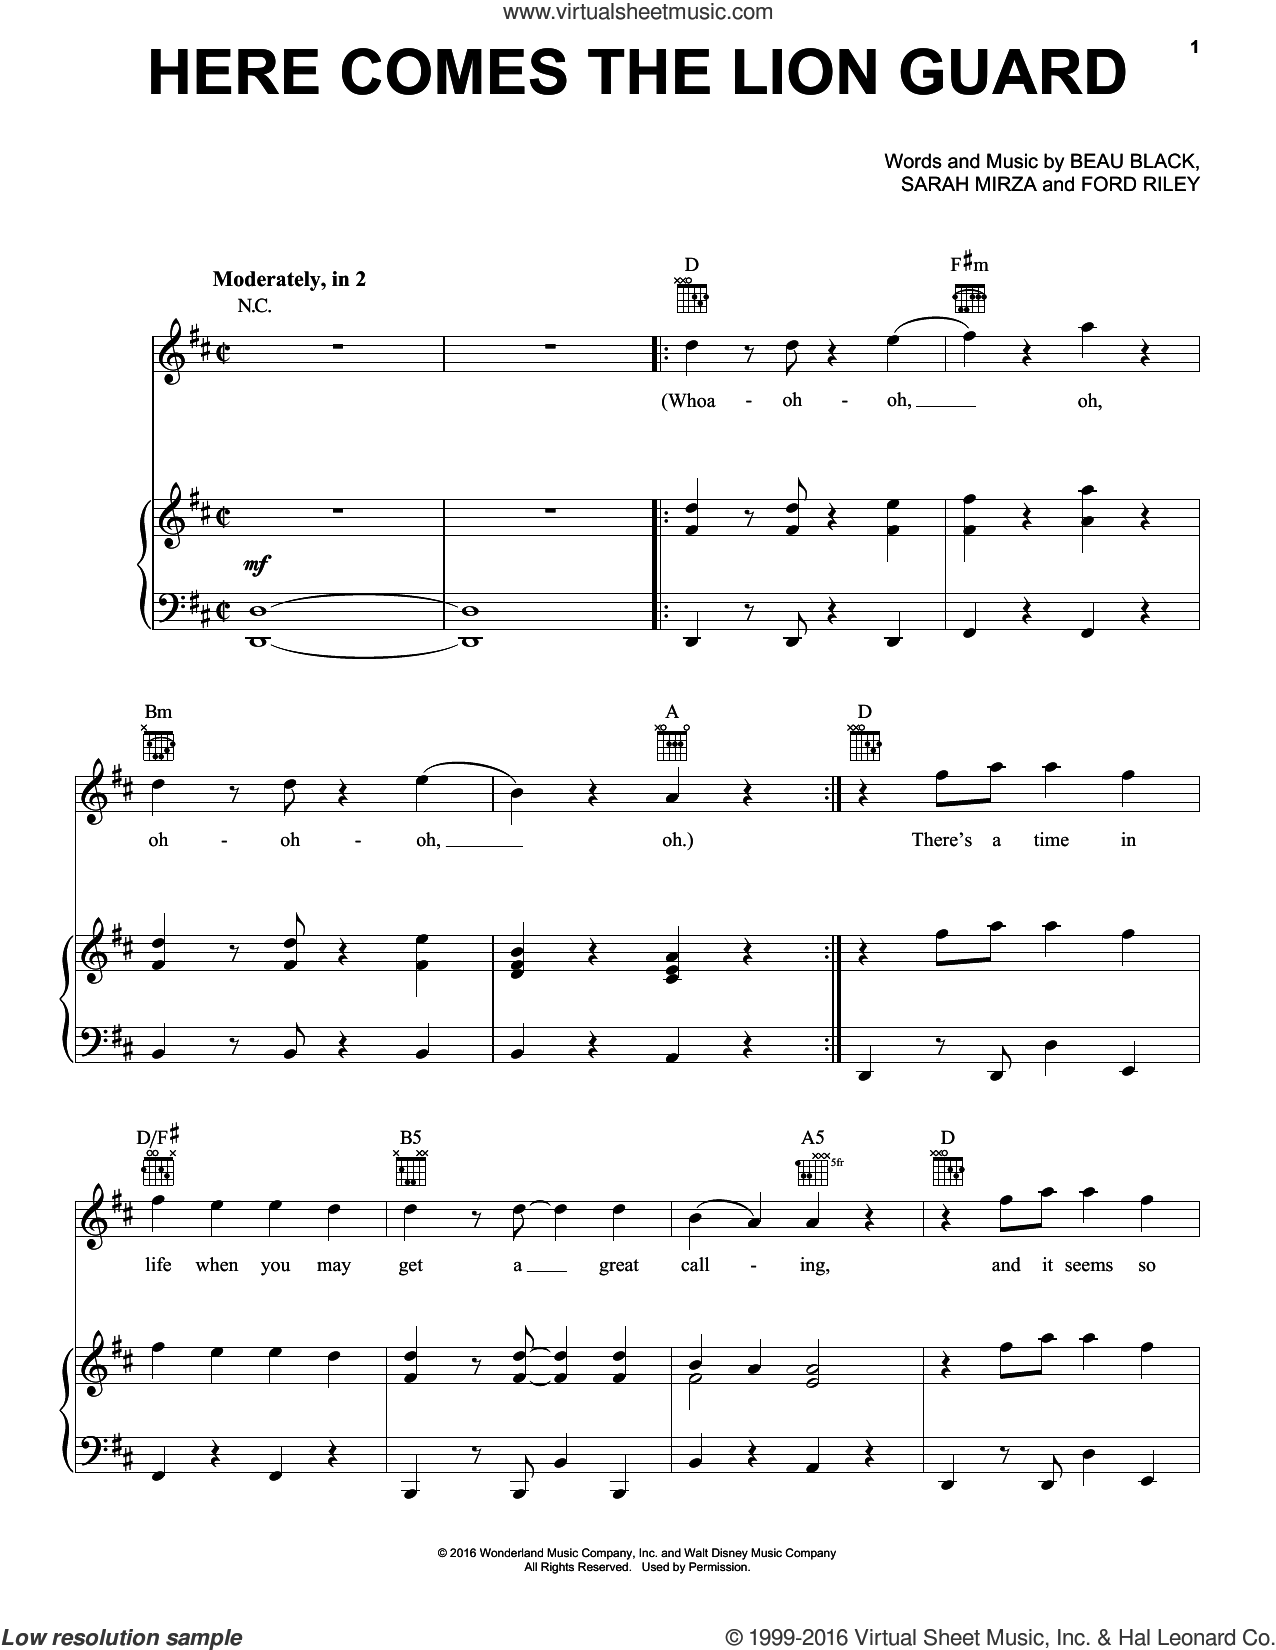 Here Comes The Lion Guard sheet music for voice, piano or guitar by Beau Black, Ford Riley and Sarah Mirza, intermediate skill level